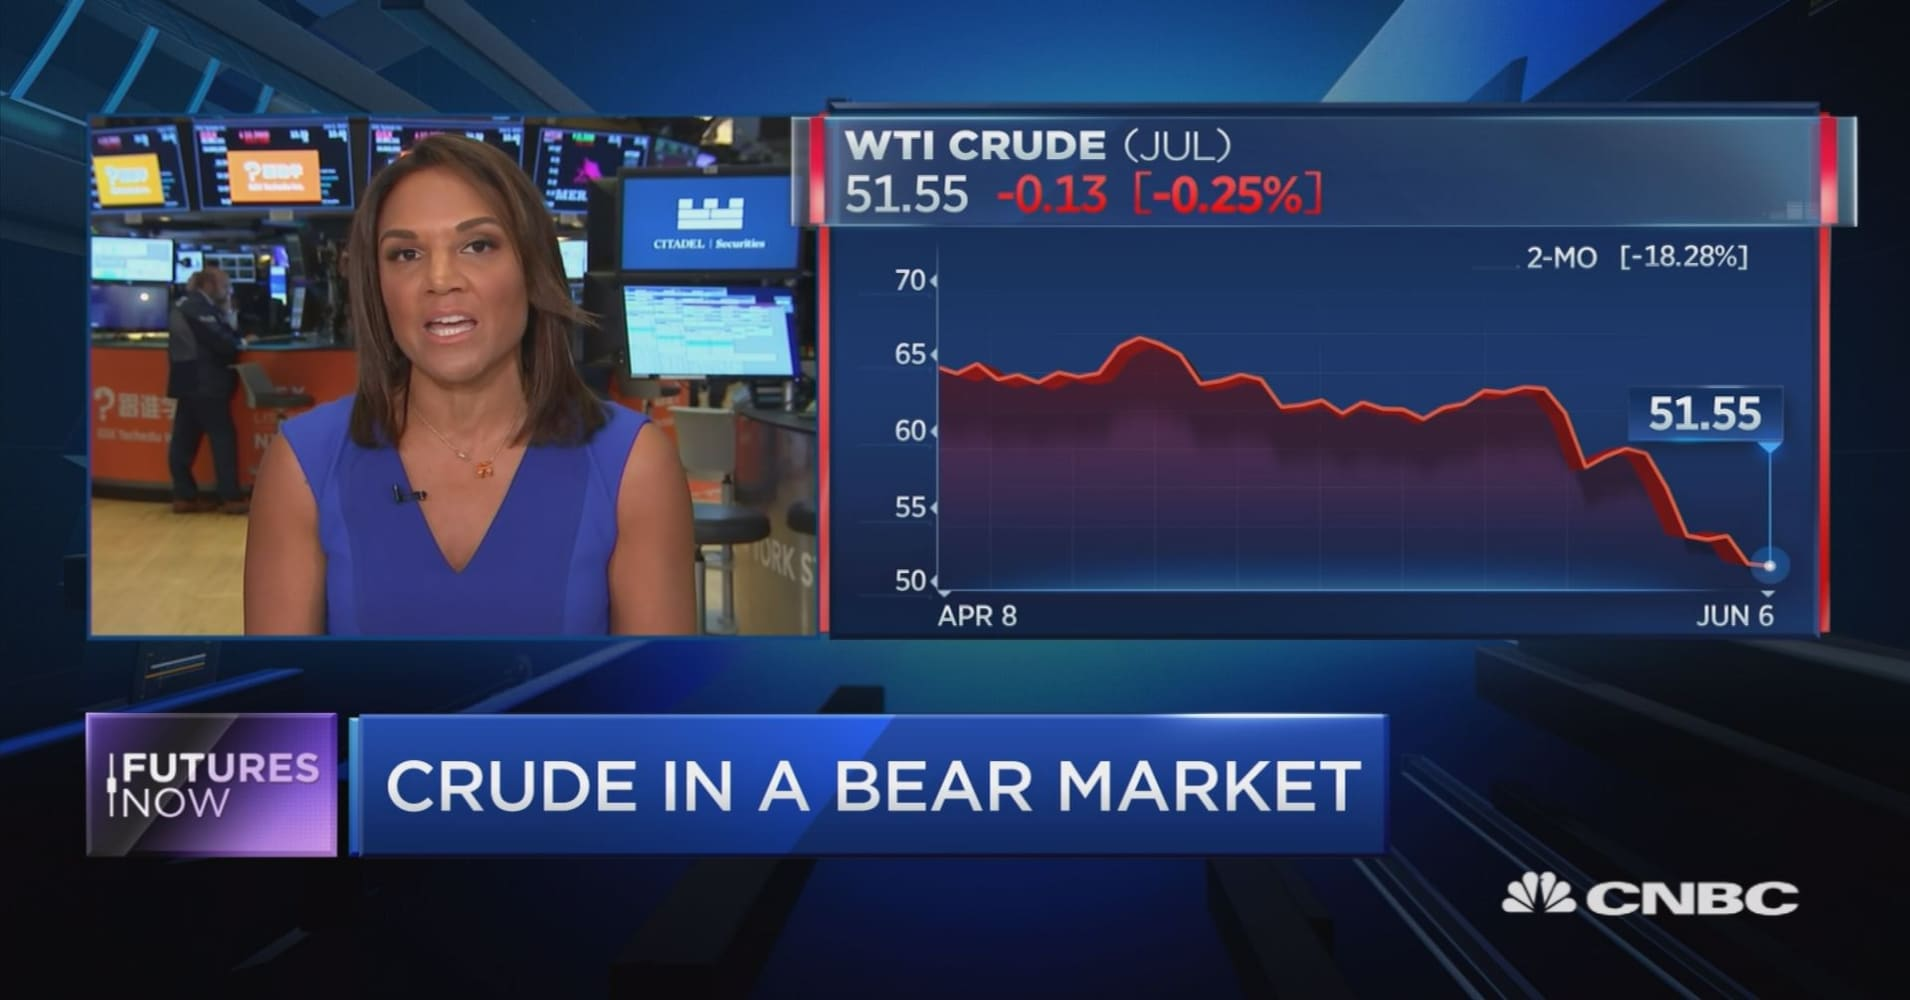 Oil's slump is predominantly a trade war issue, RBC's Helima Croft says